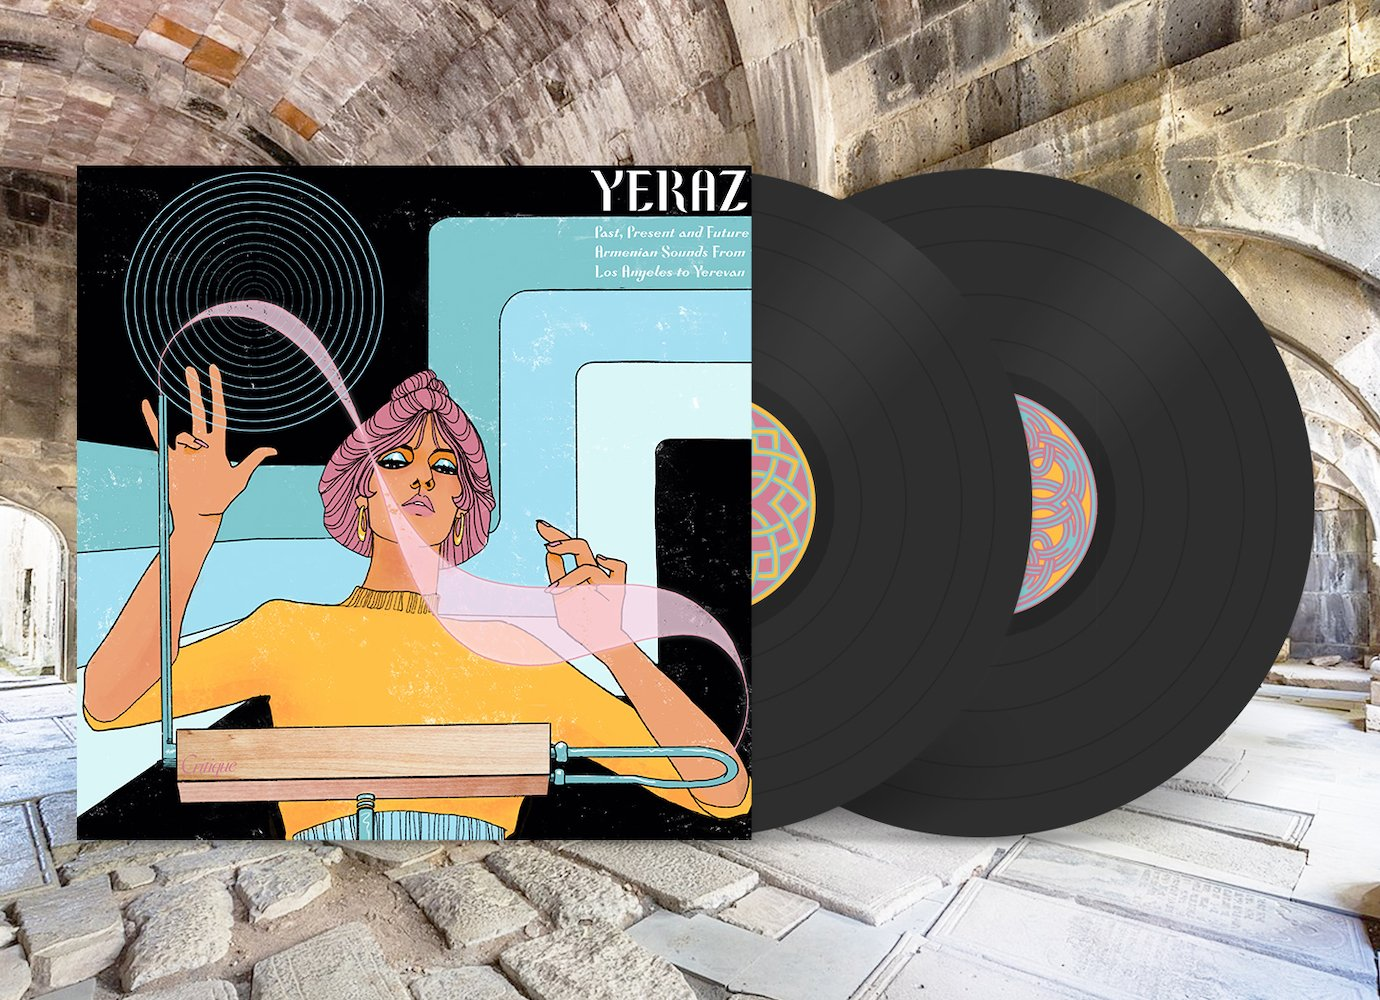 Yeraz: the dreamy debut album fusing Armenian sounds from across the world